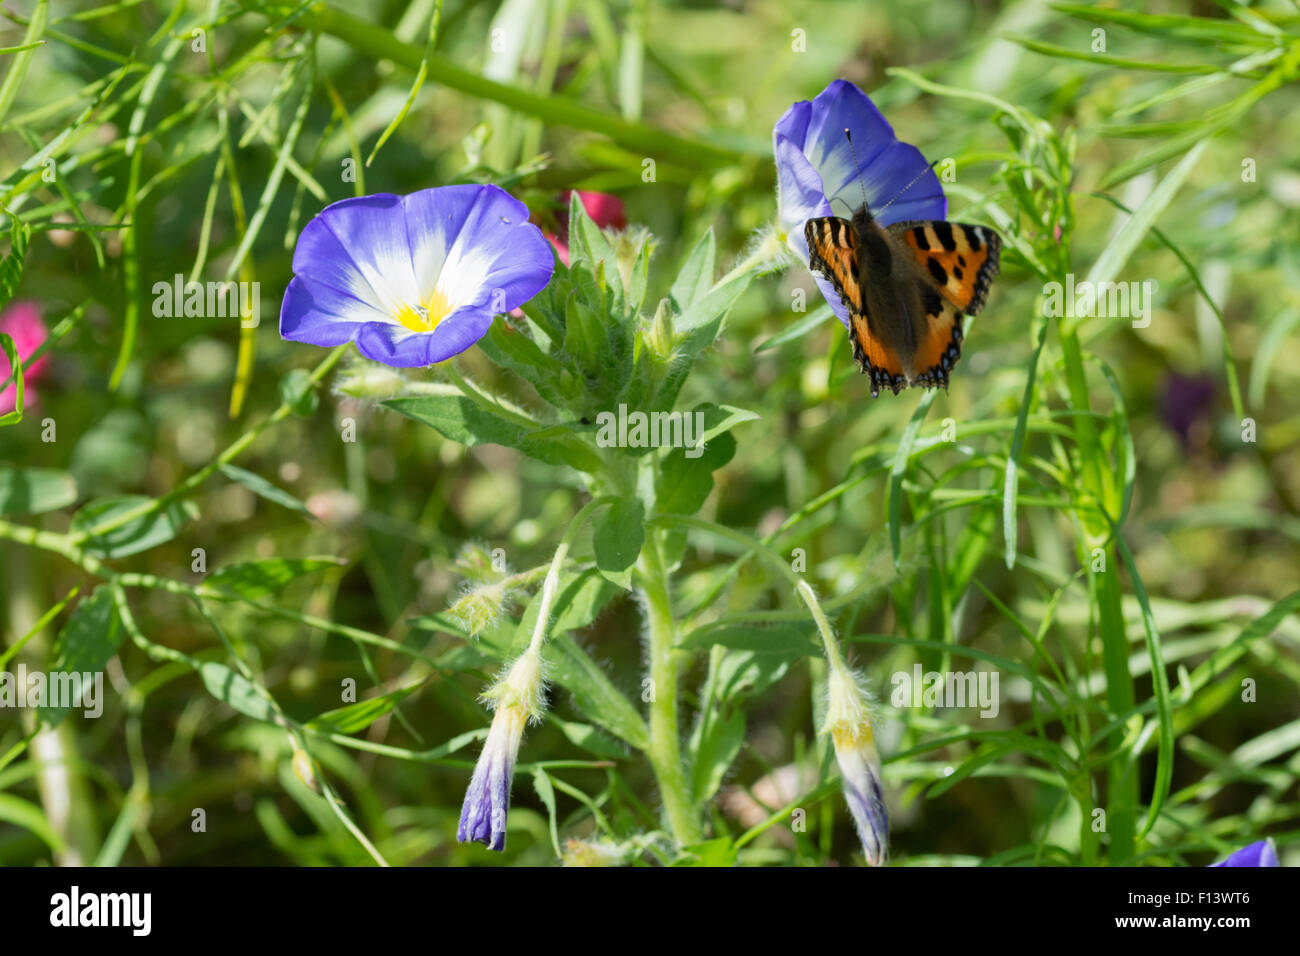 Convolvulus tricolor  morning glory plant with butterfly on flower - Stock Image